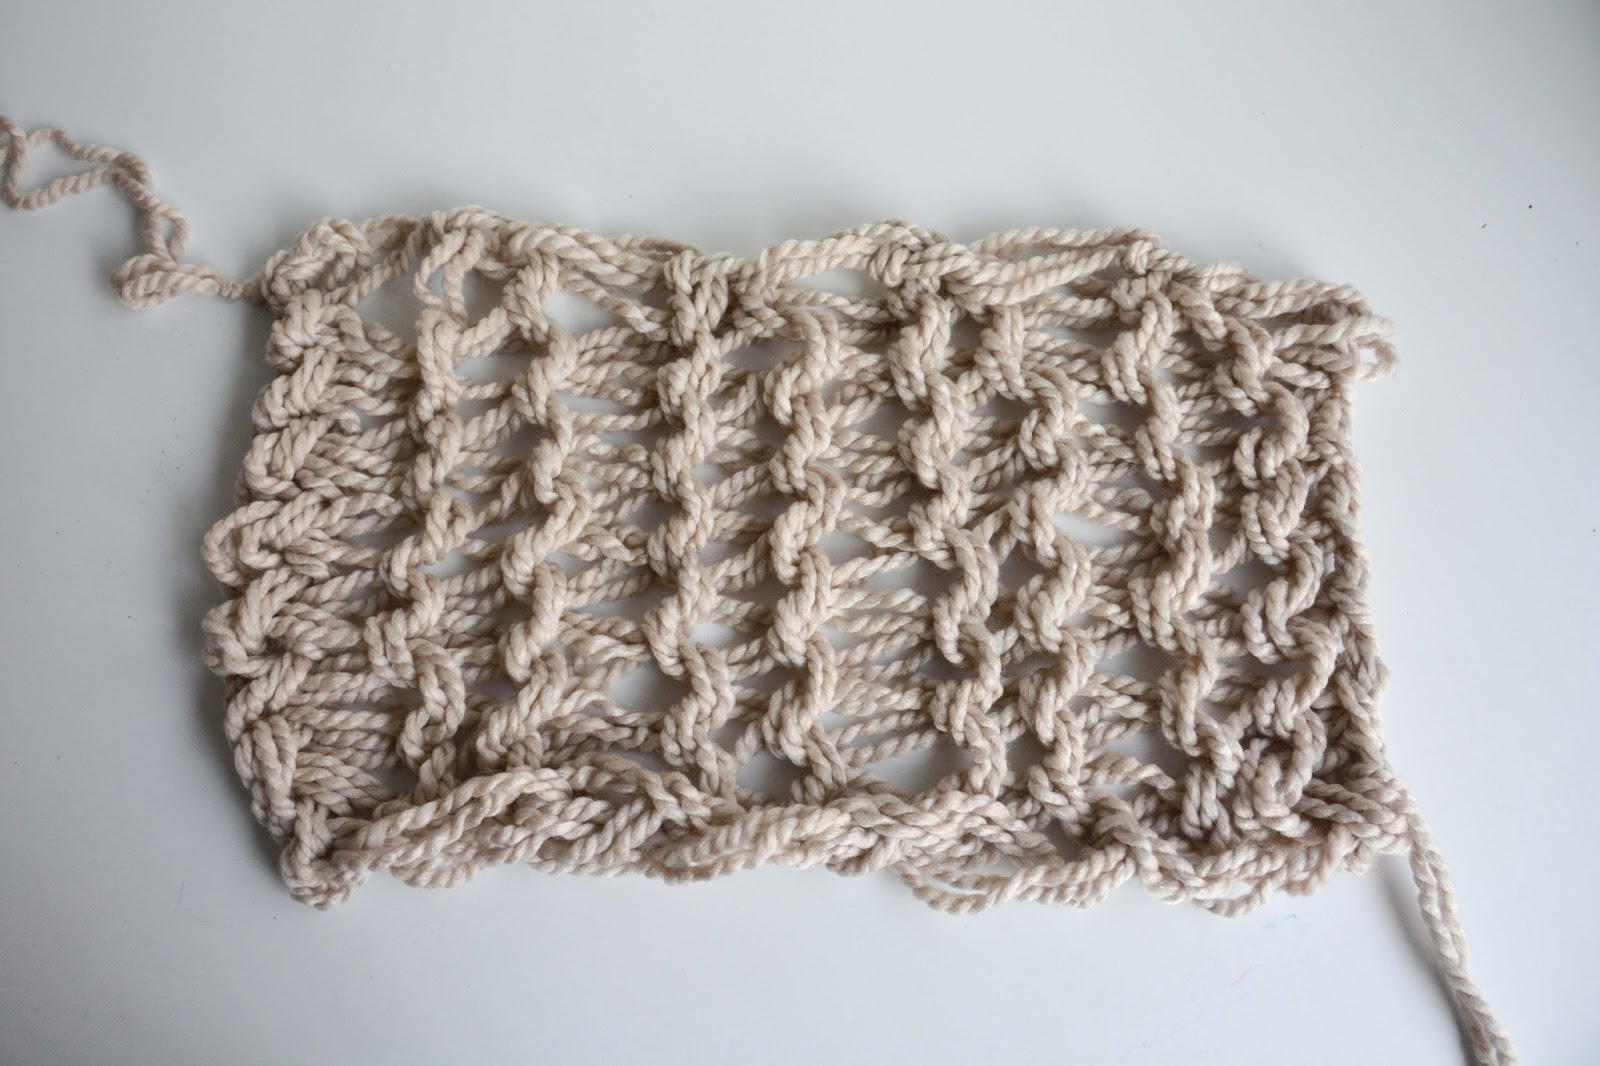 Arm Knitting Cowl : Aesthetic nest knitting arm knit infinity cowl tutorial